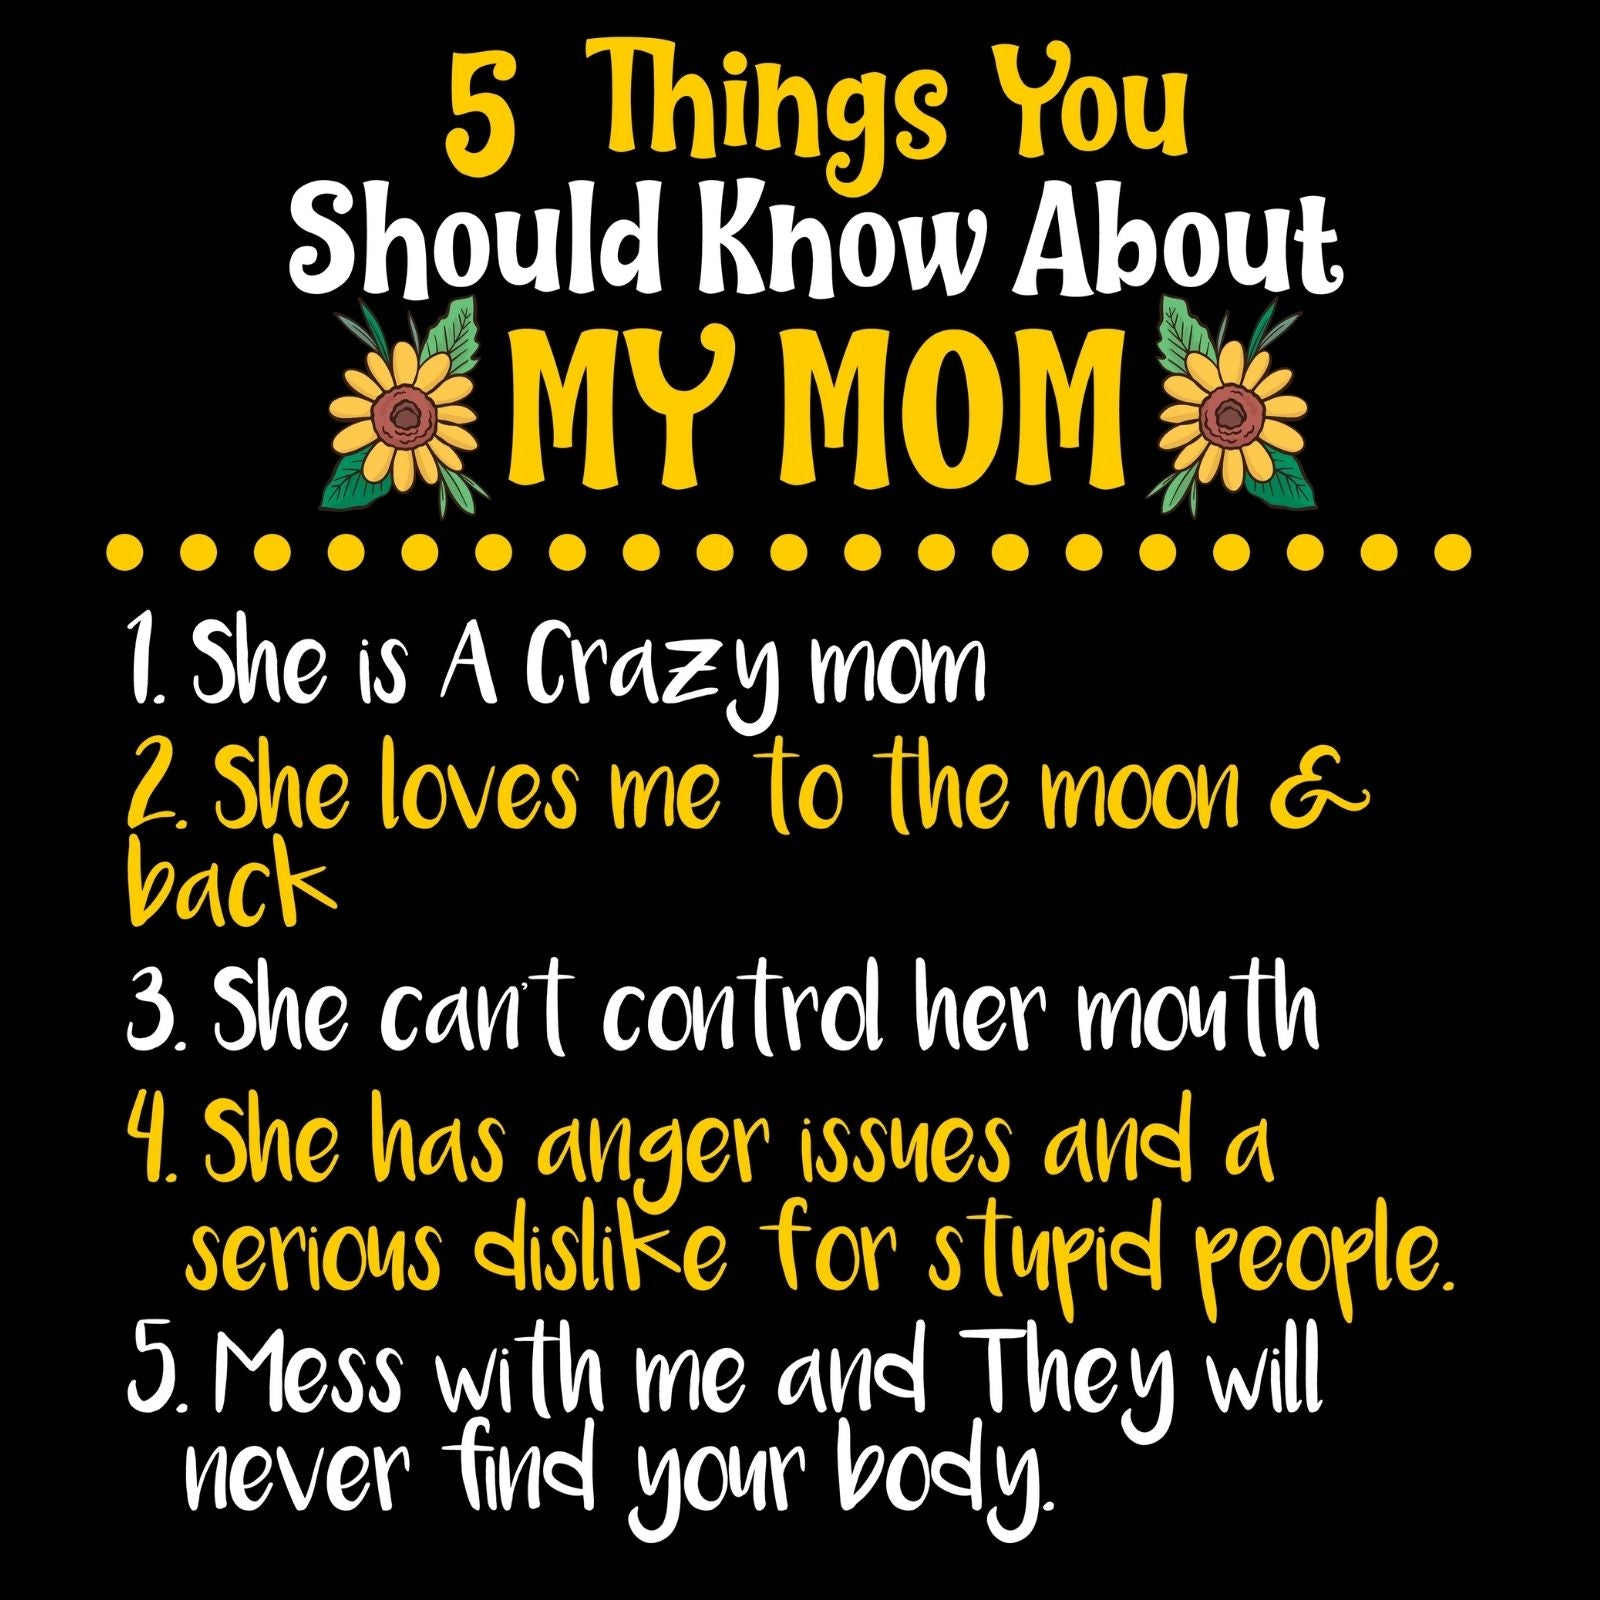 5 Things You Should Know About My MOM - Bastard Graphics